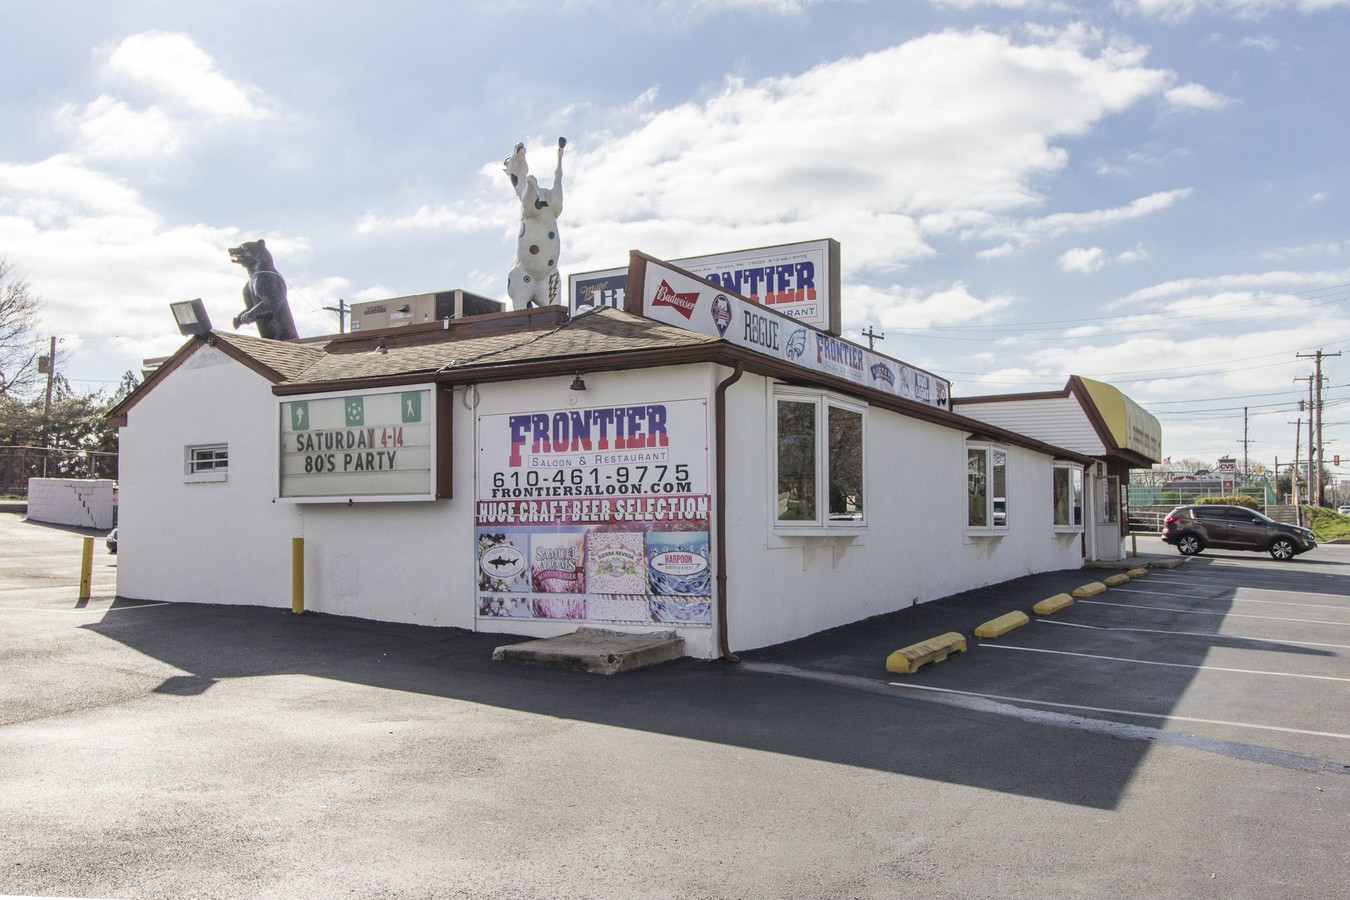 A Delaware County Landmark, the Frontier Saloon in Folsom, Now Up for Sale